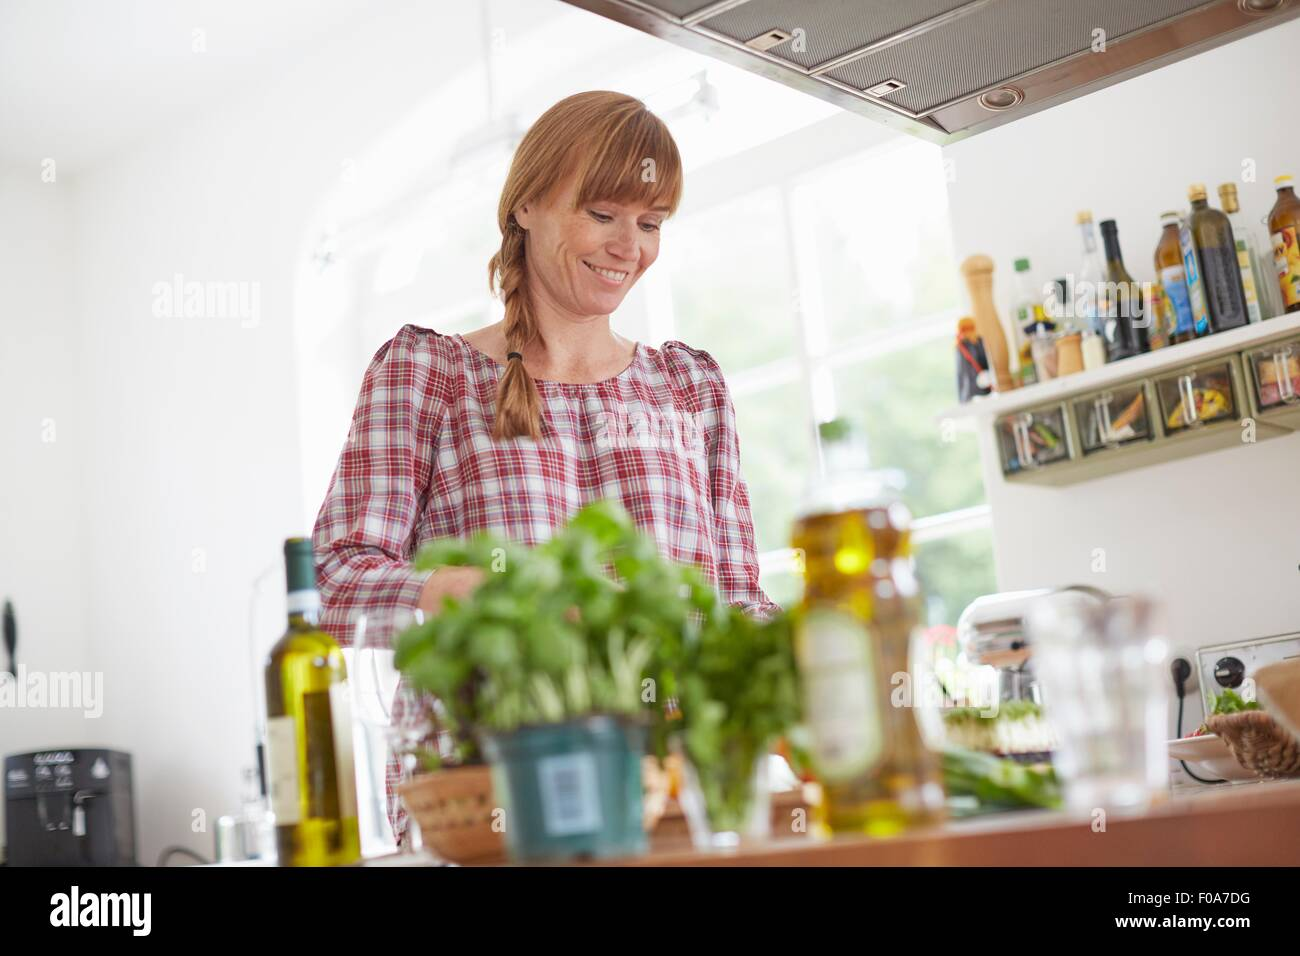 Woman preparing meal in kitchen - Stock Image